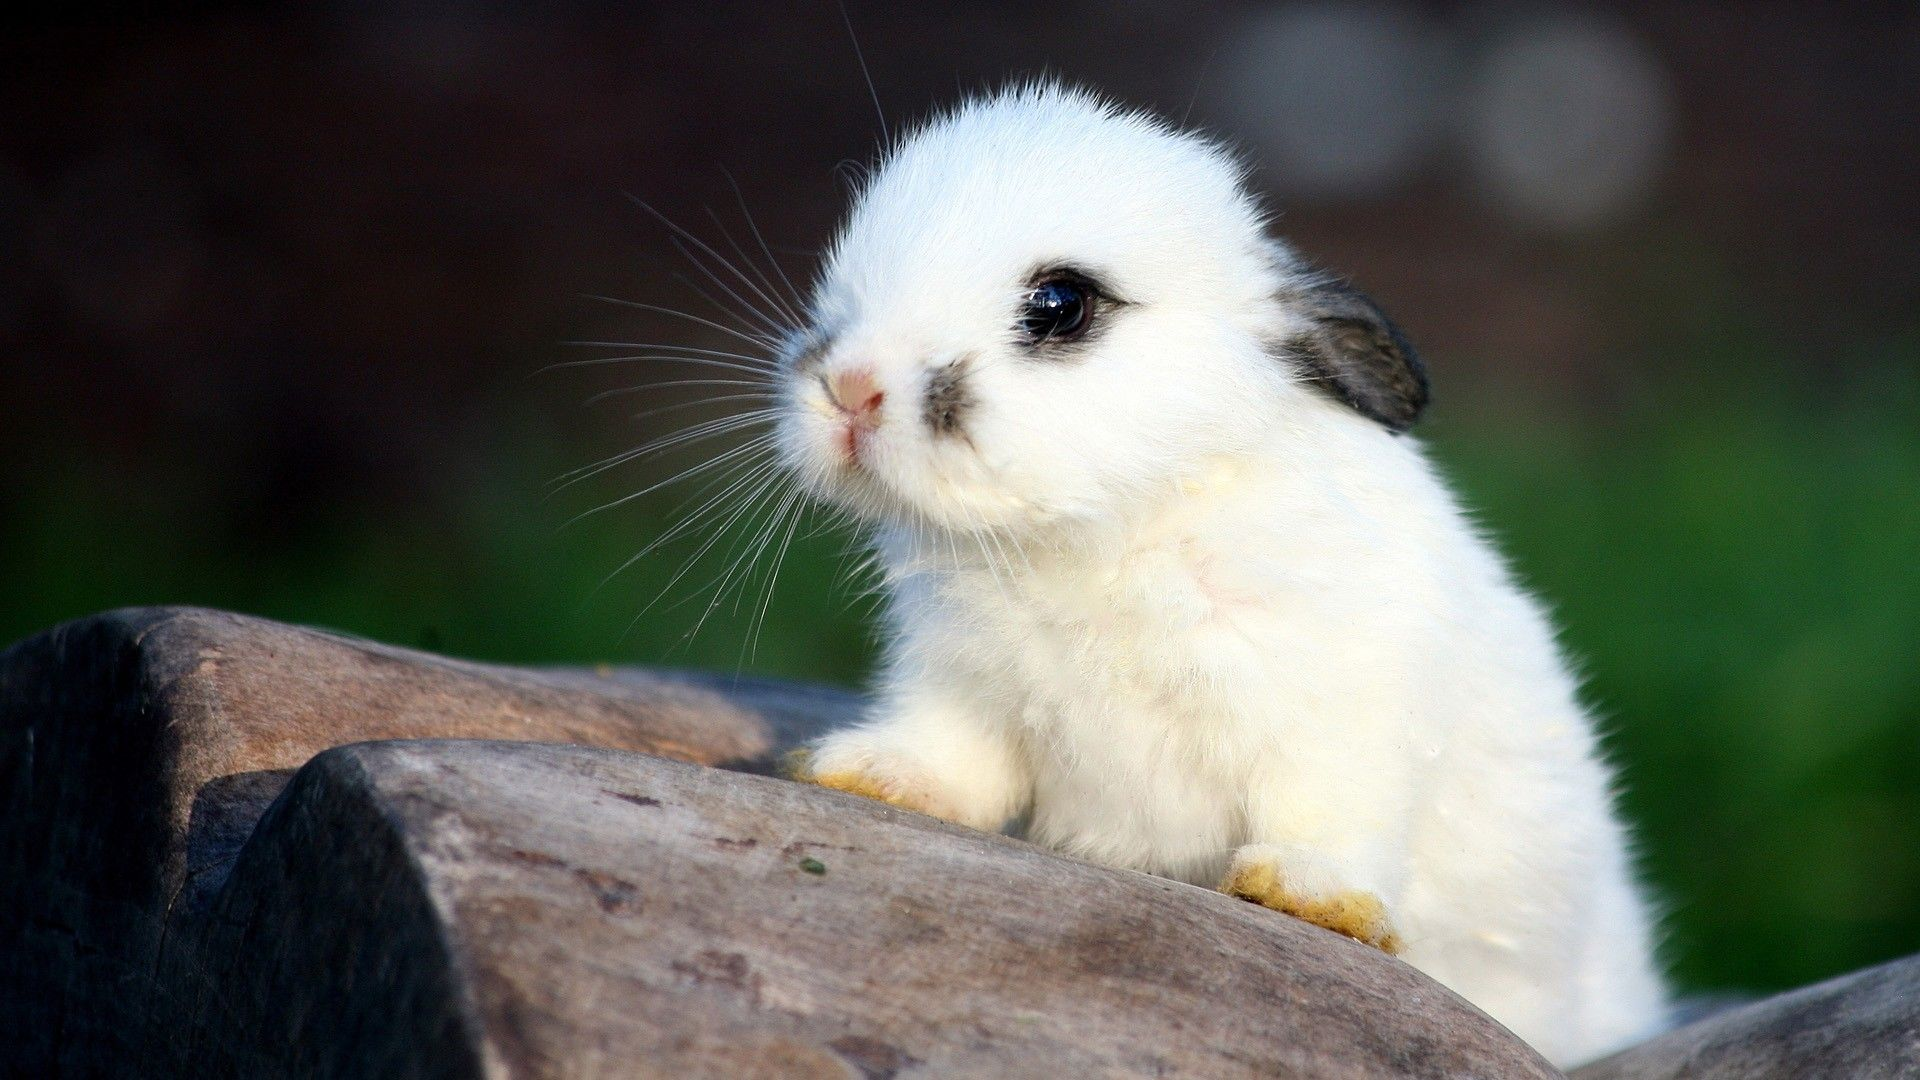 Hd Computer Animal Wallpaper Cute Rabbit Animal Hd Desktop